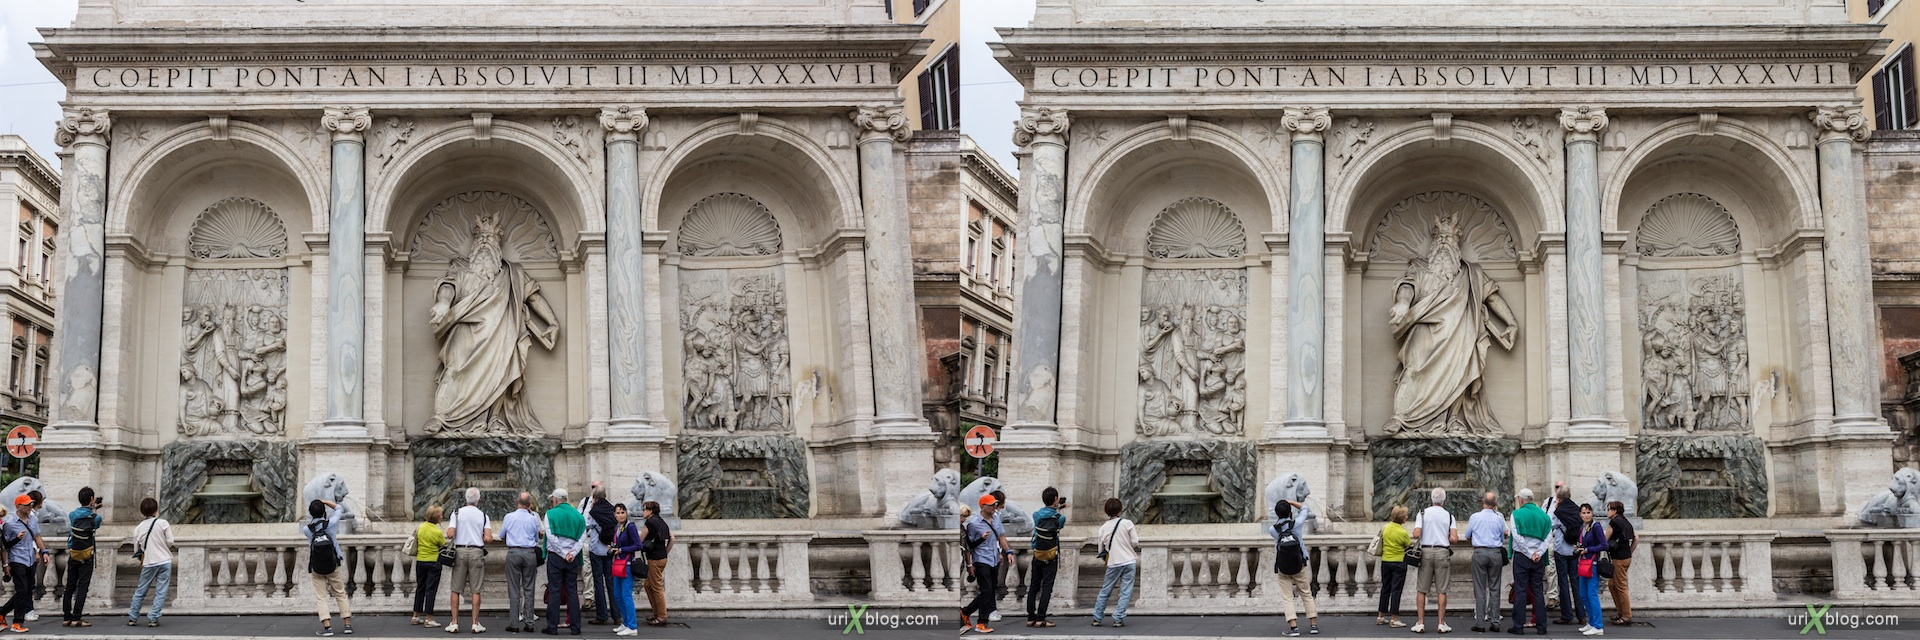 2012, dell'acqua Felice fountain, San Bernardo square, Rome, Italy, 3D, stereo pair, cross-eyed, crossview, cross view stereo pair